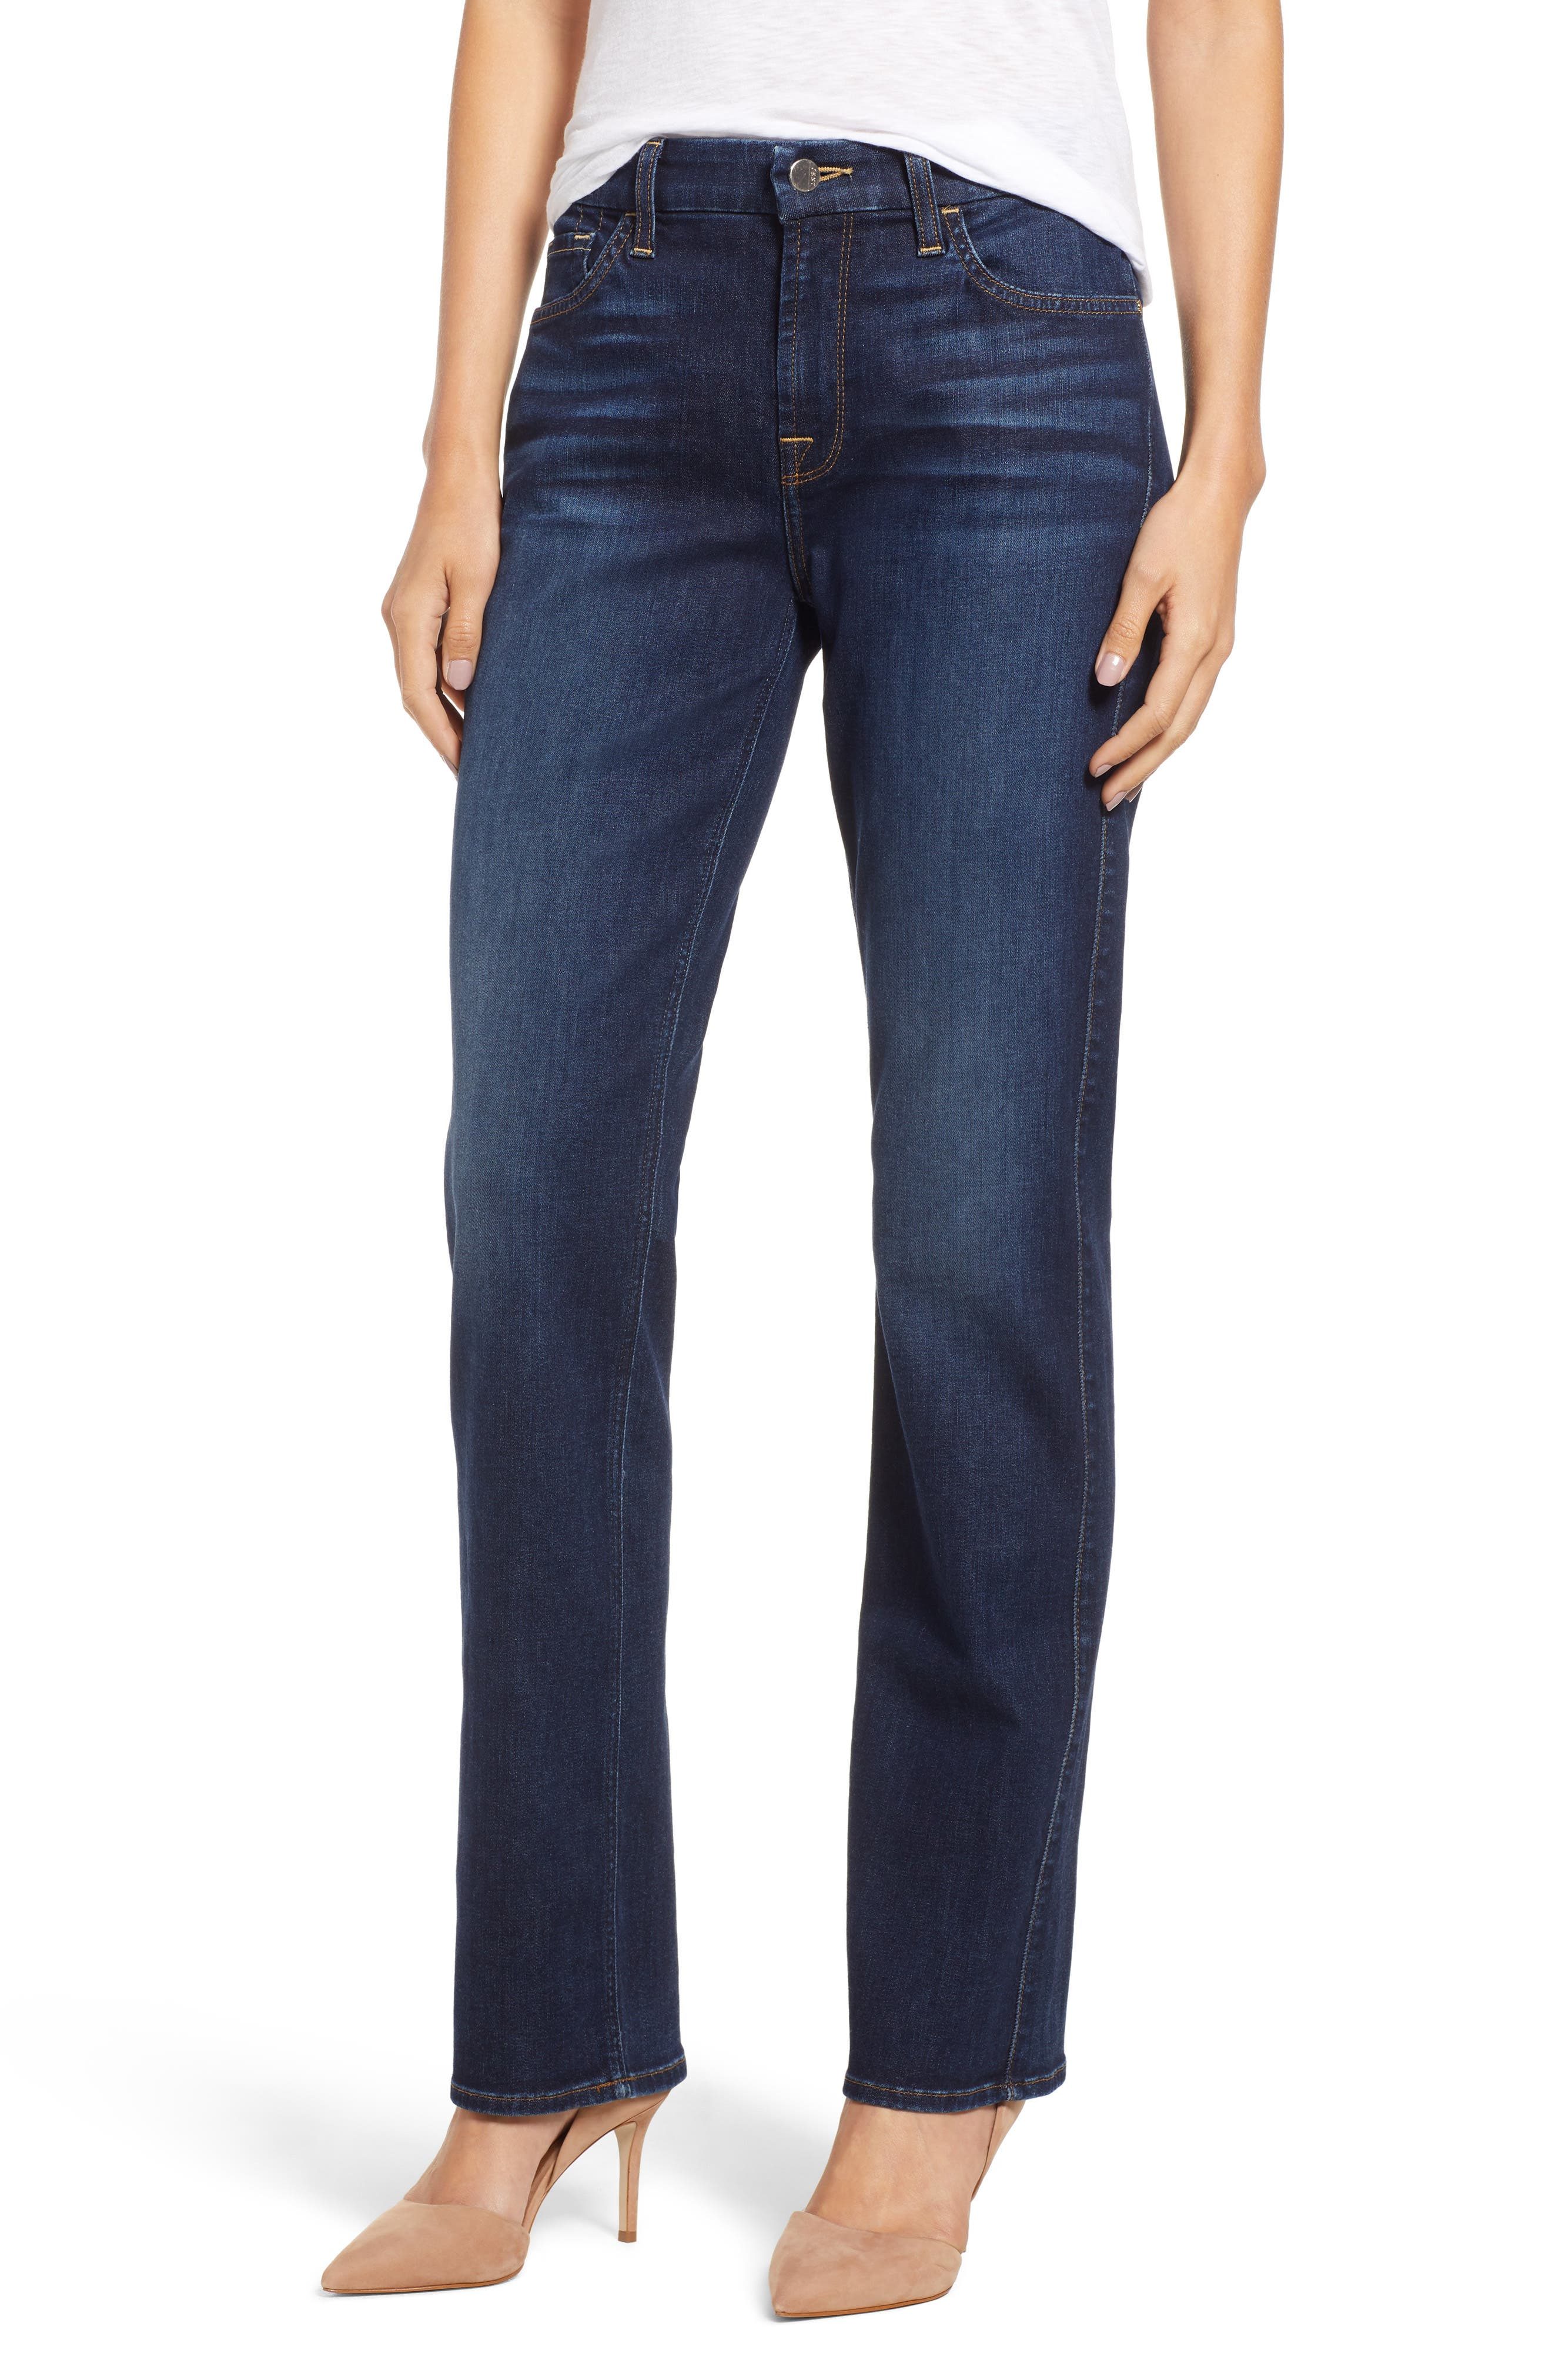 JEN7 BY 7 FOR ALL MANKIND Stretch Slim Straight Leg Jeans, Main, color, 400